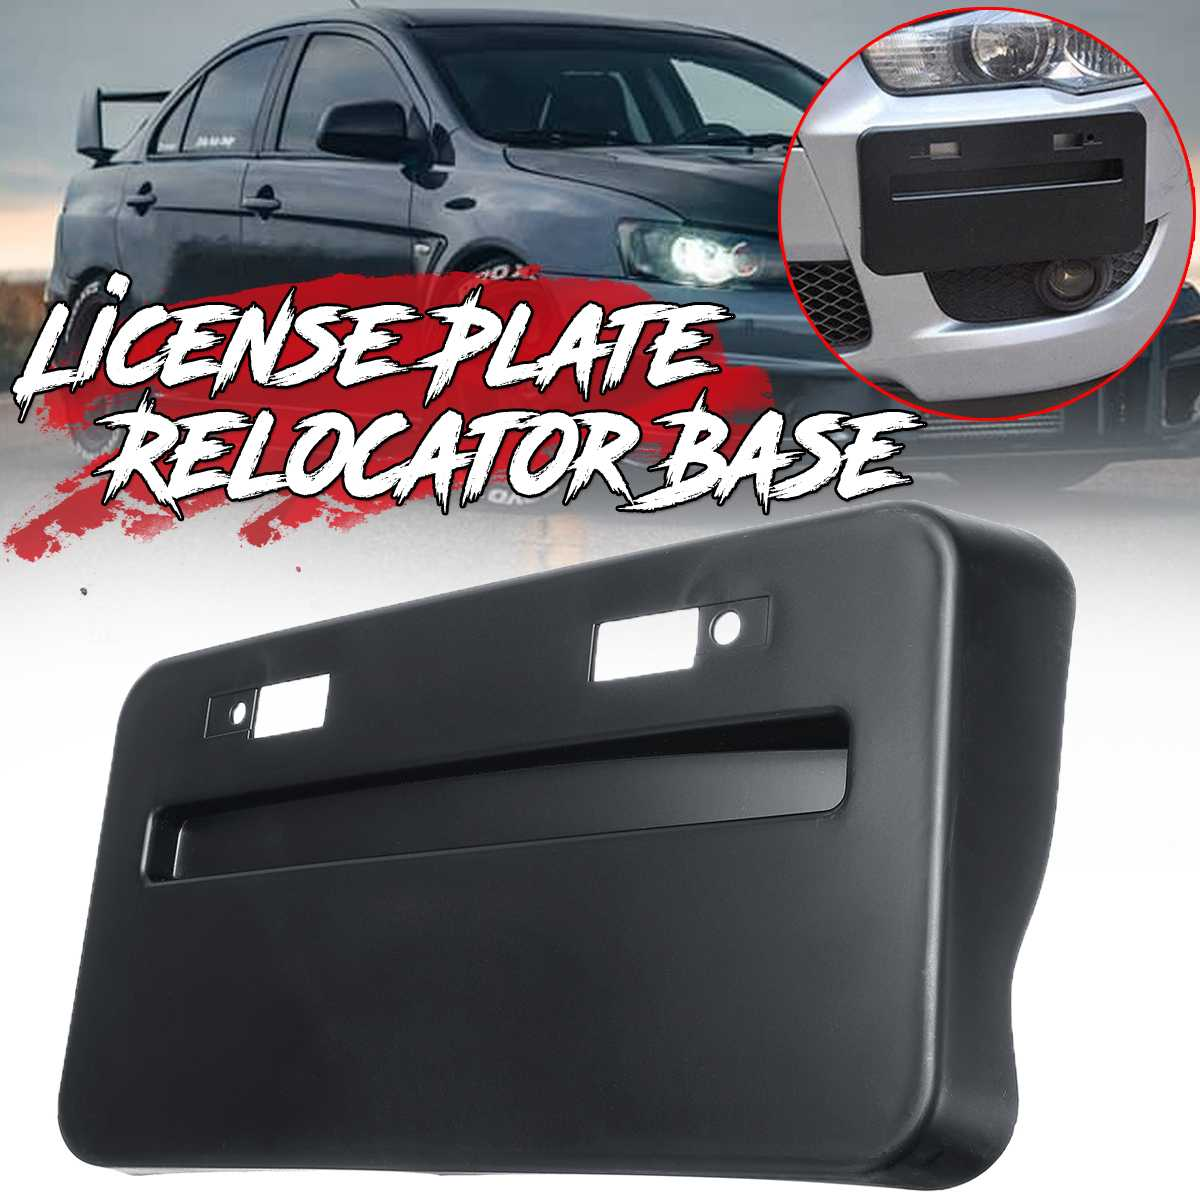 1x Car Front Bumper License Plate Base Frame Relocator Base For Mitsubishi Lancer GTS EVO X 2008-2018 License Plate Bracket